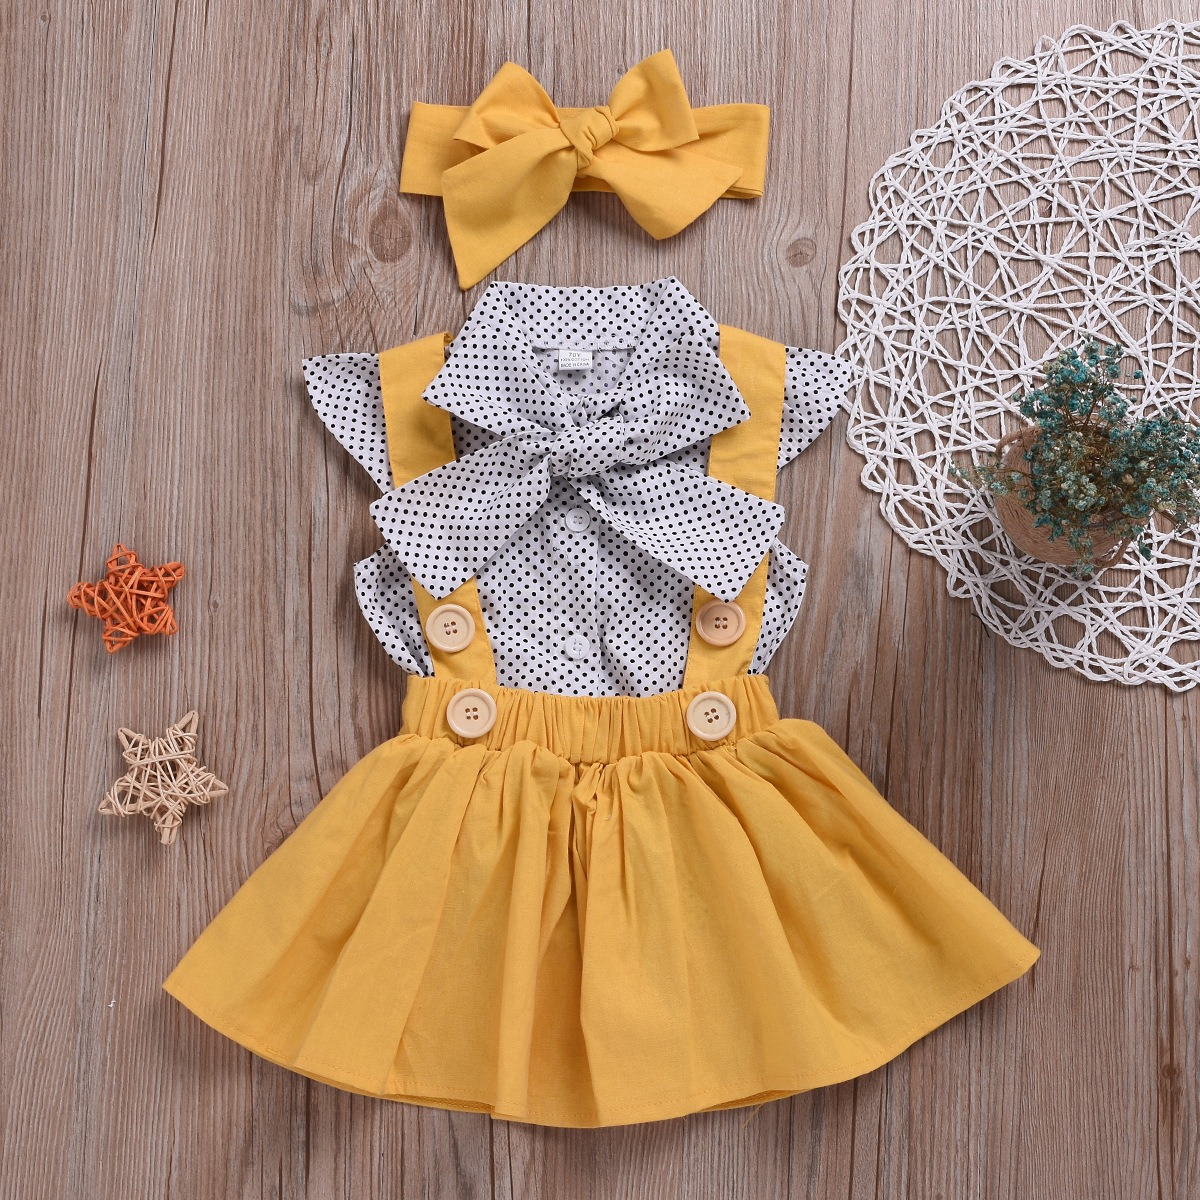 Polka Dot Girls Top + Bow + Dress Three-Piece Set for 2Y-5Y